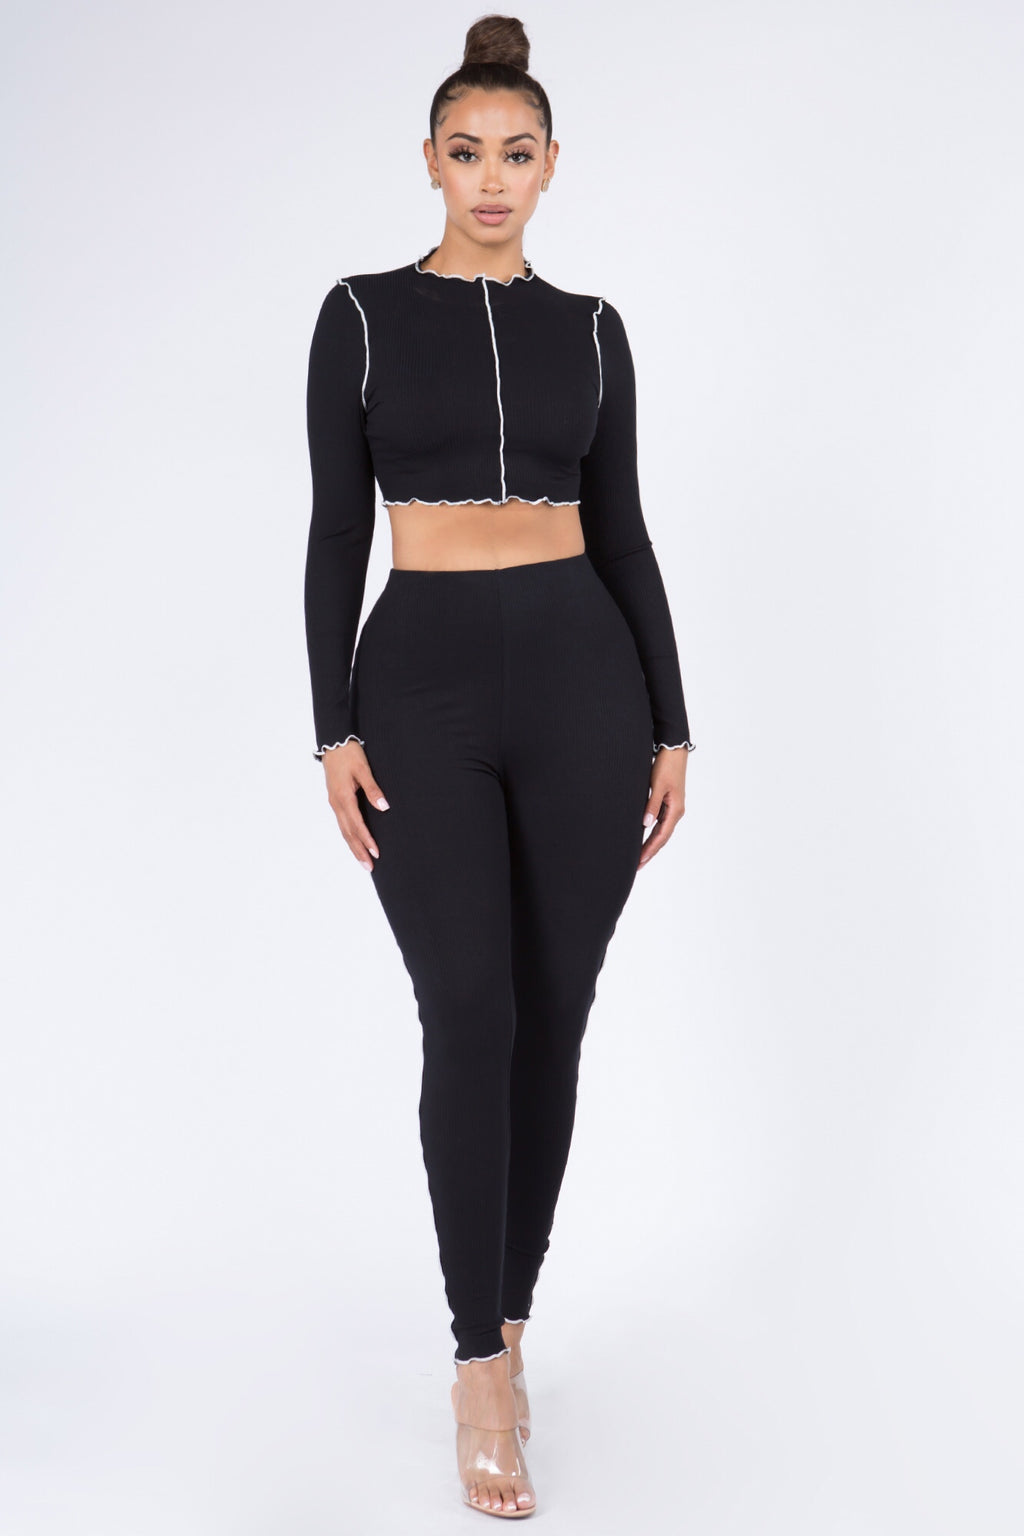 Sexy Long Sleeve Knit Crop Top w/ Pants Set-BLACK - Fashion House USA